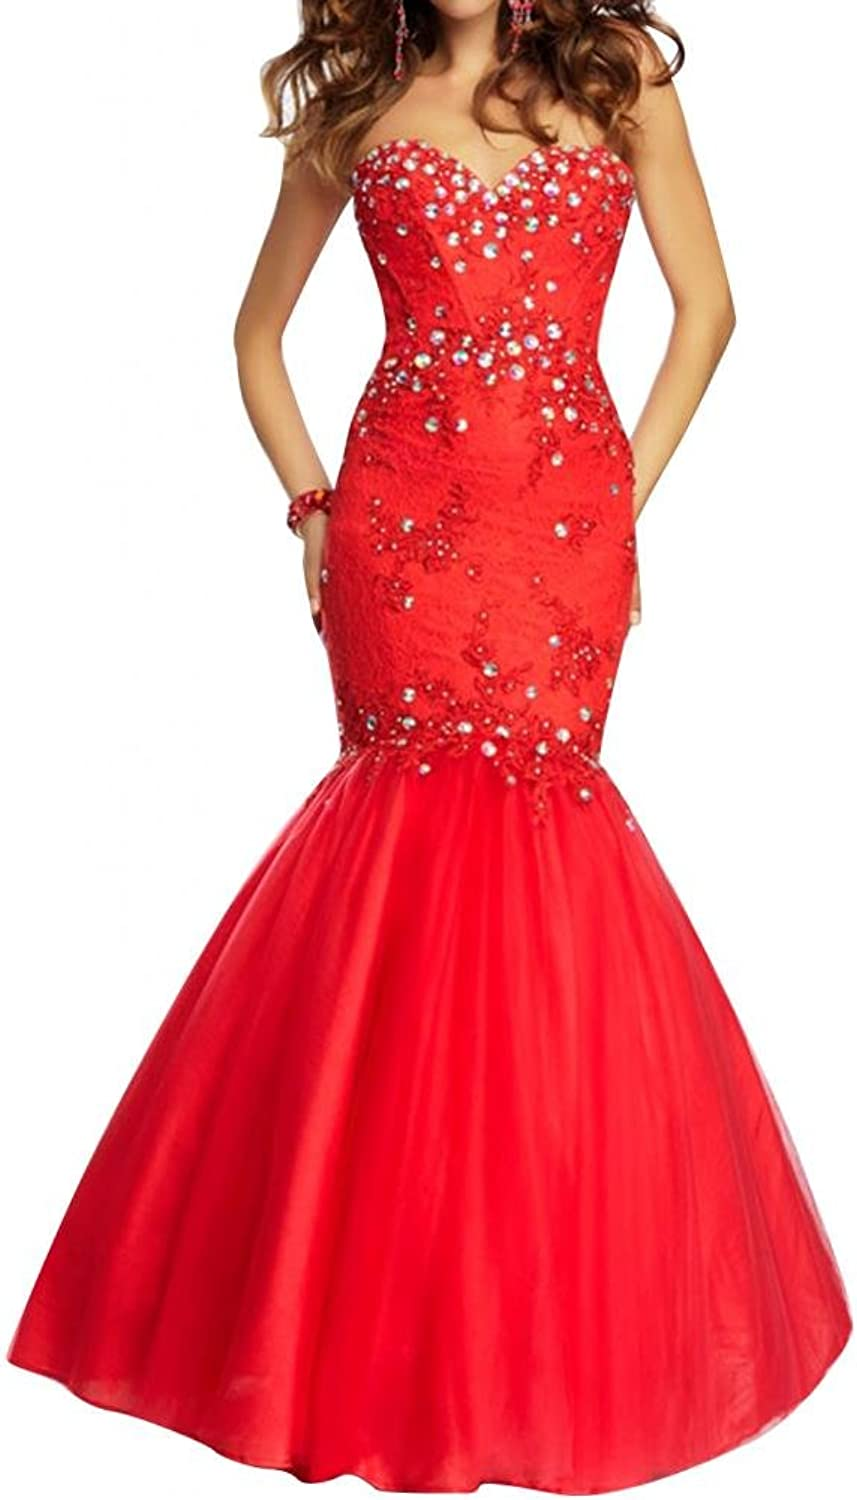 Angel Bride Celebrity Evening Dresses Tulle Mermaid Prom Gowns Long